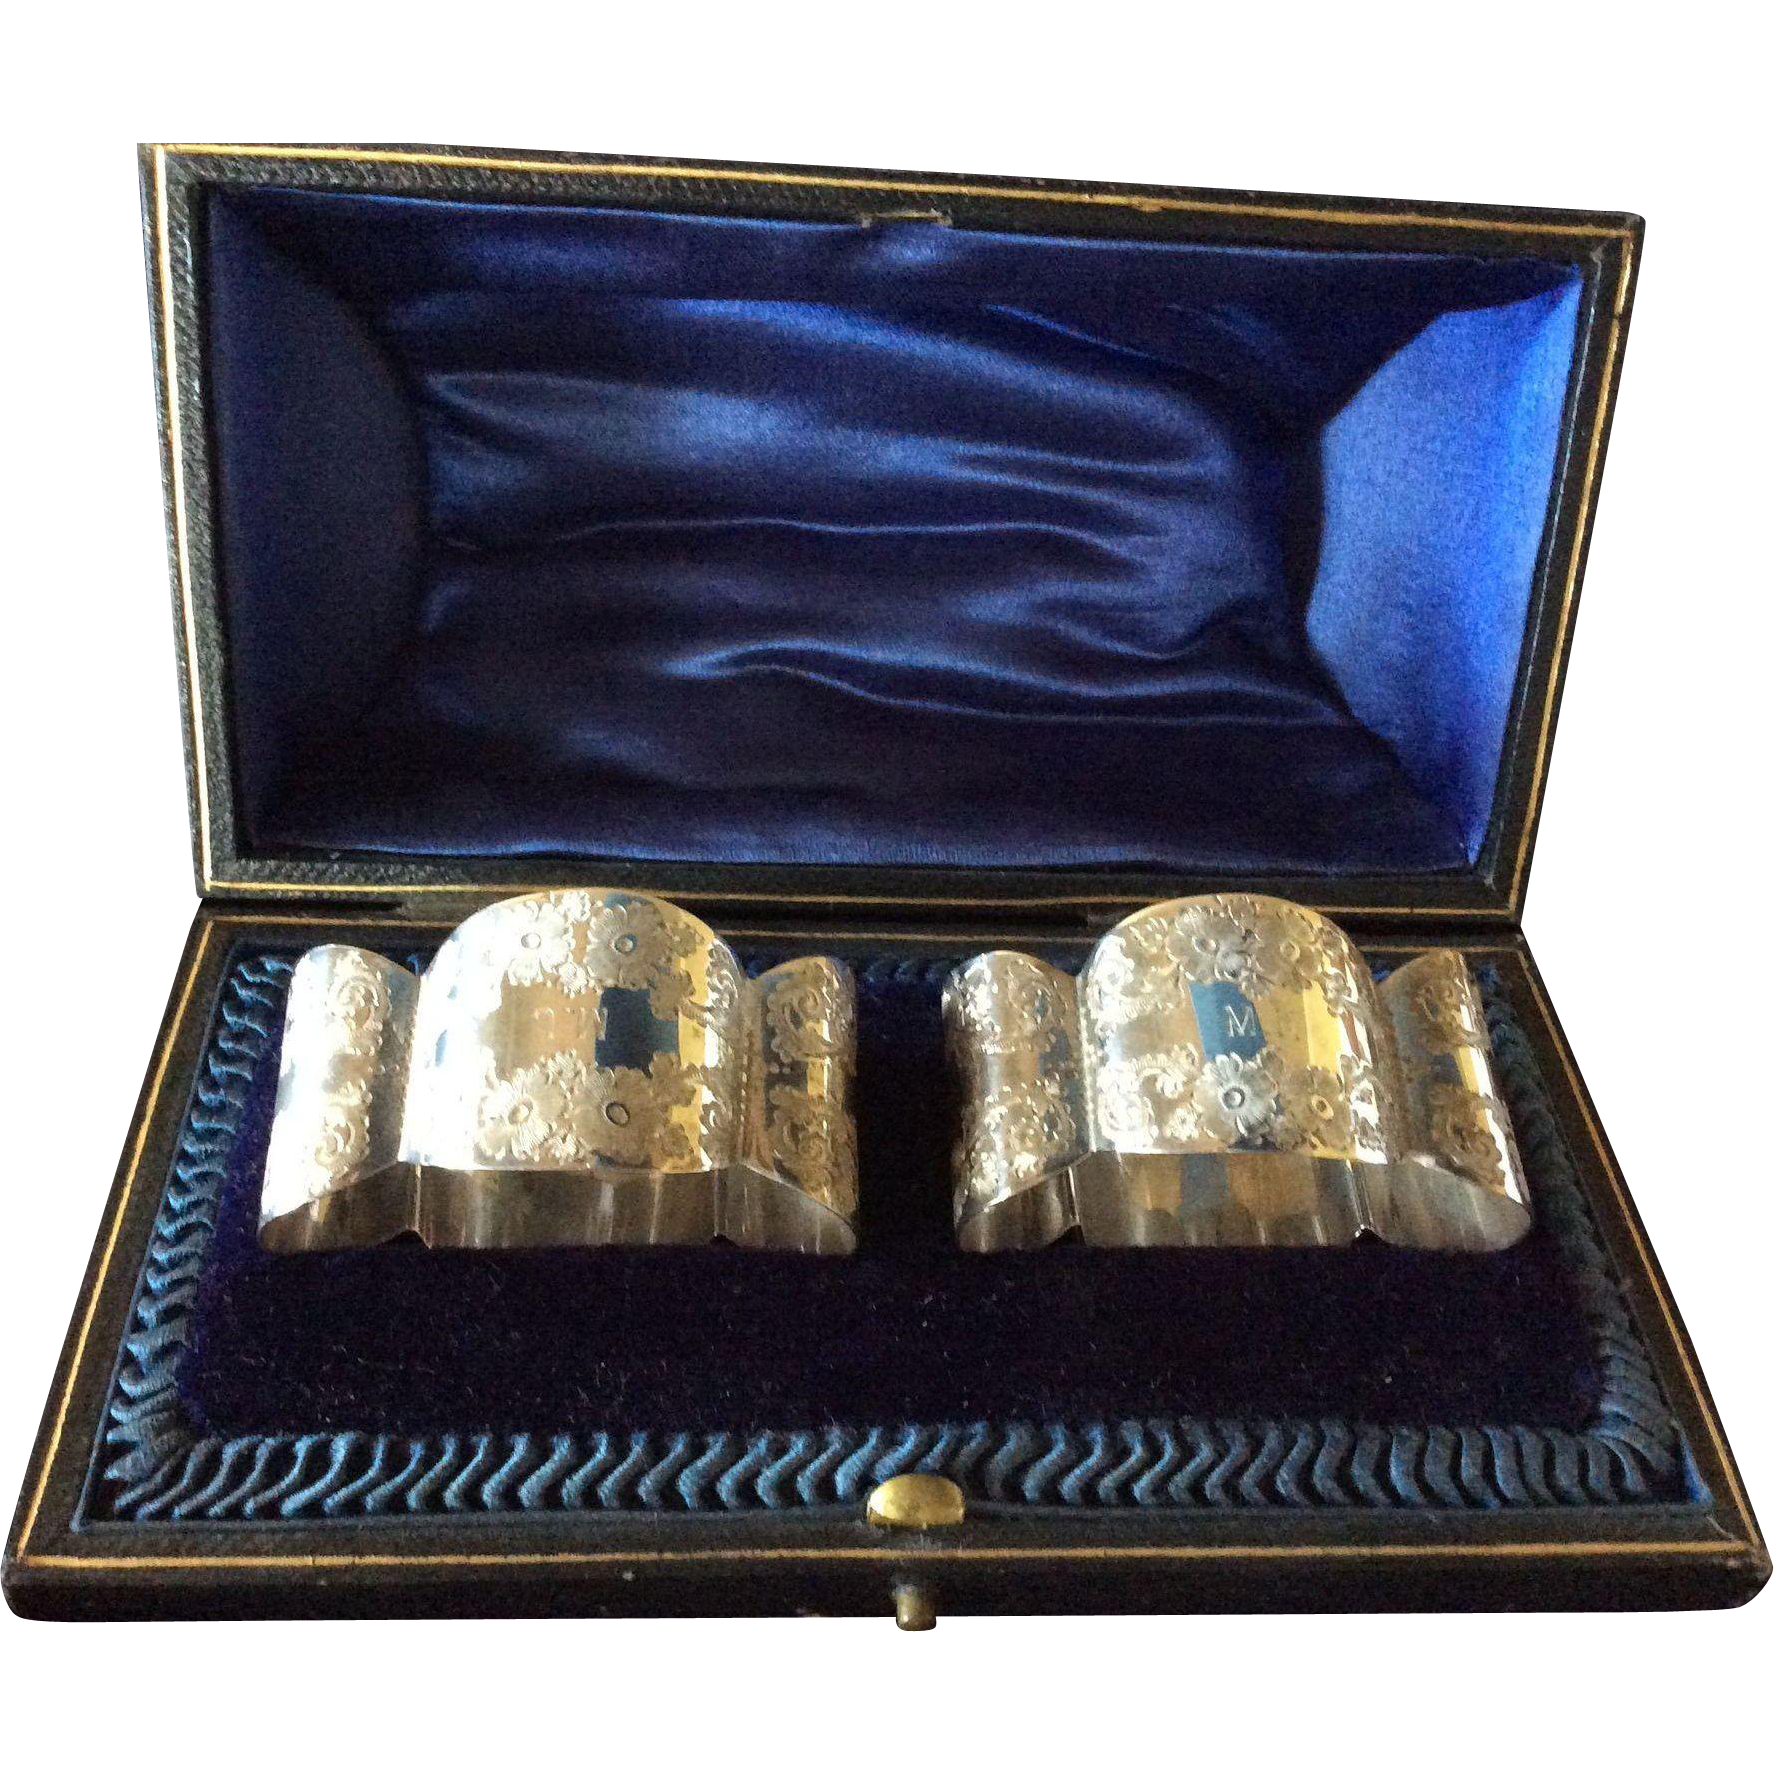 Boxed pair Ornate English Sterling silver Napkin Rings Serviette Holders